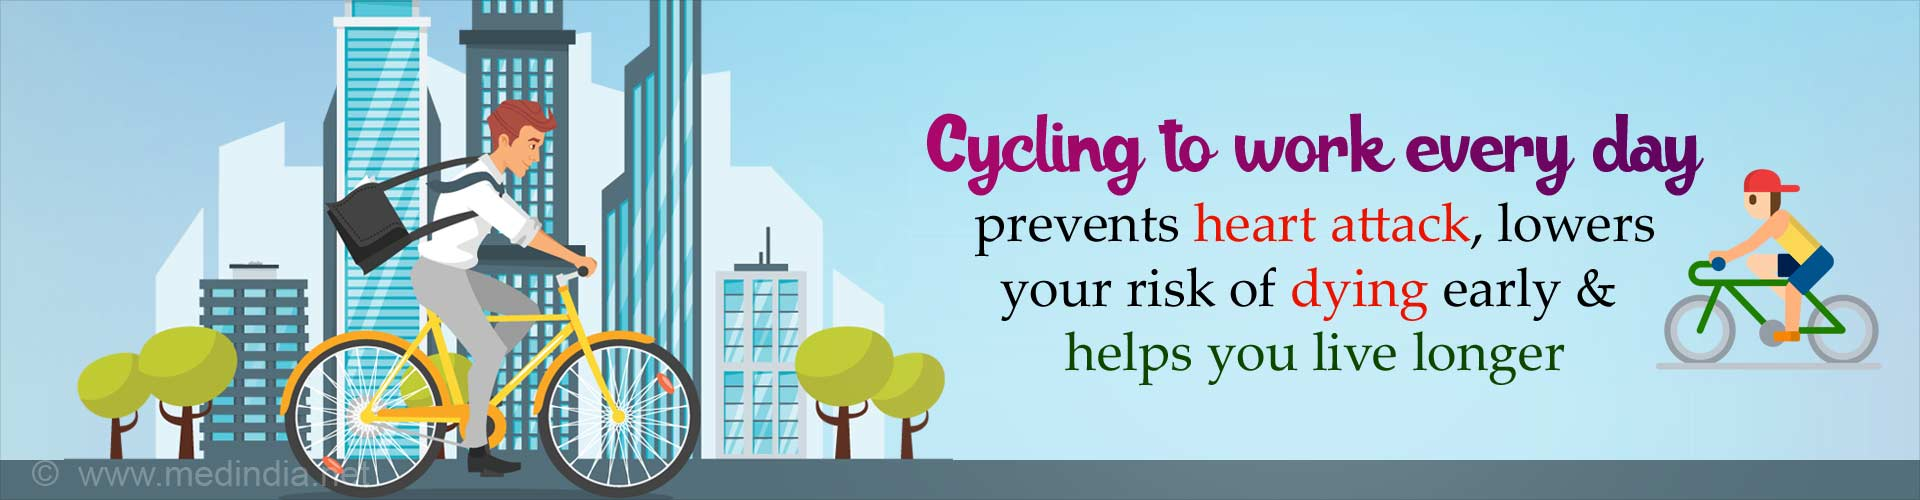 Cycling to work every day prevents heart attack, lowers your risk of dying early and helps you live longer.